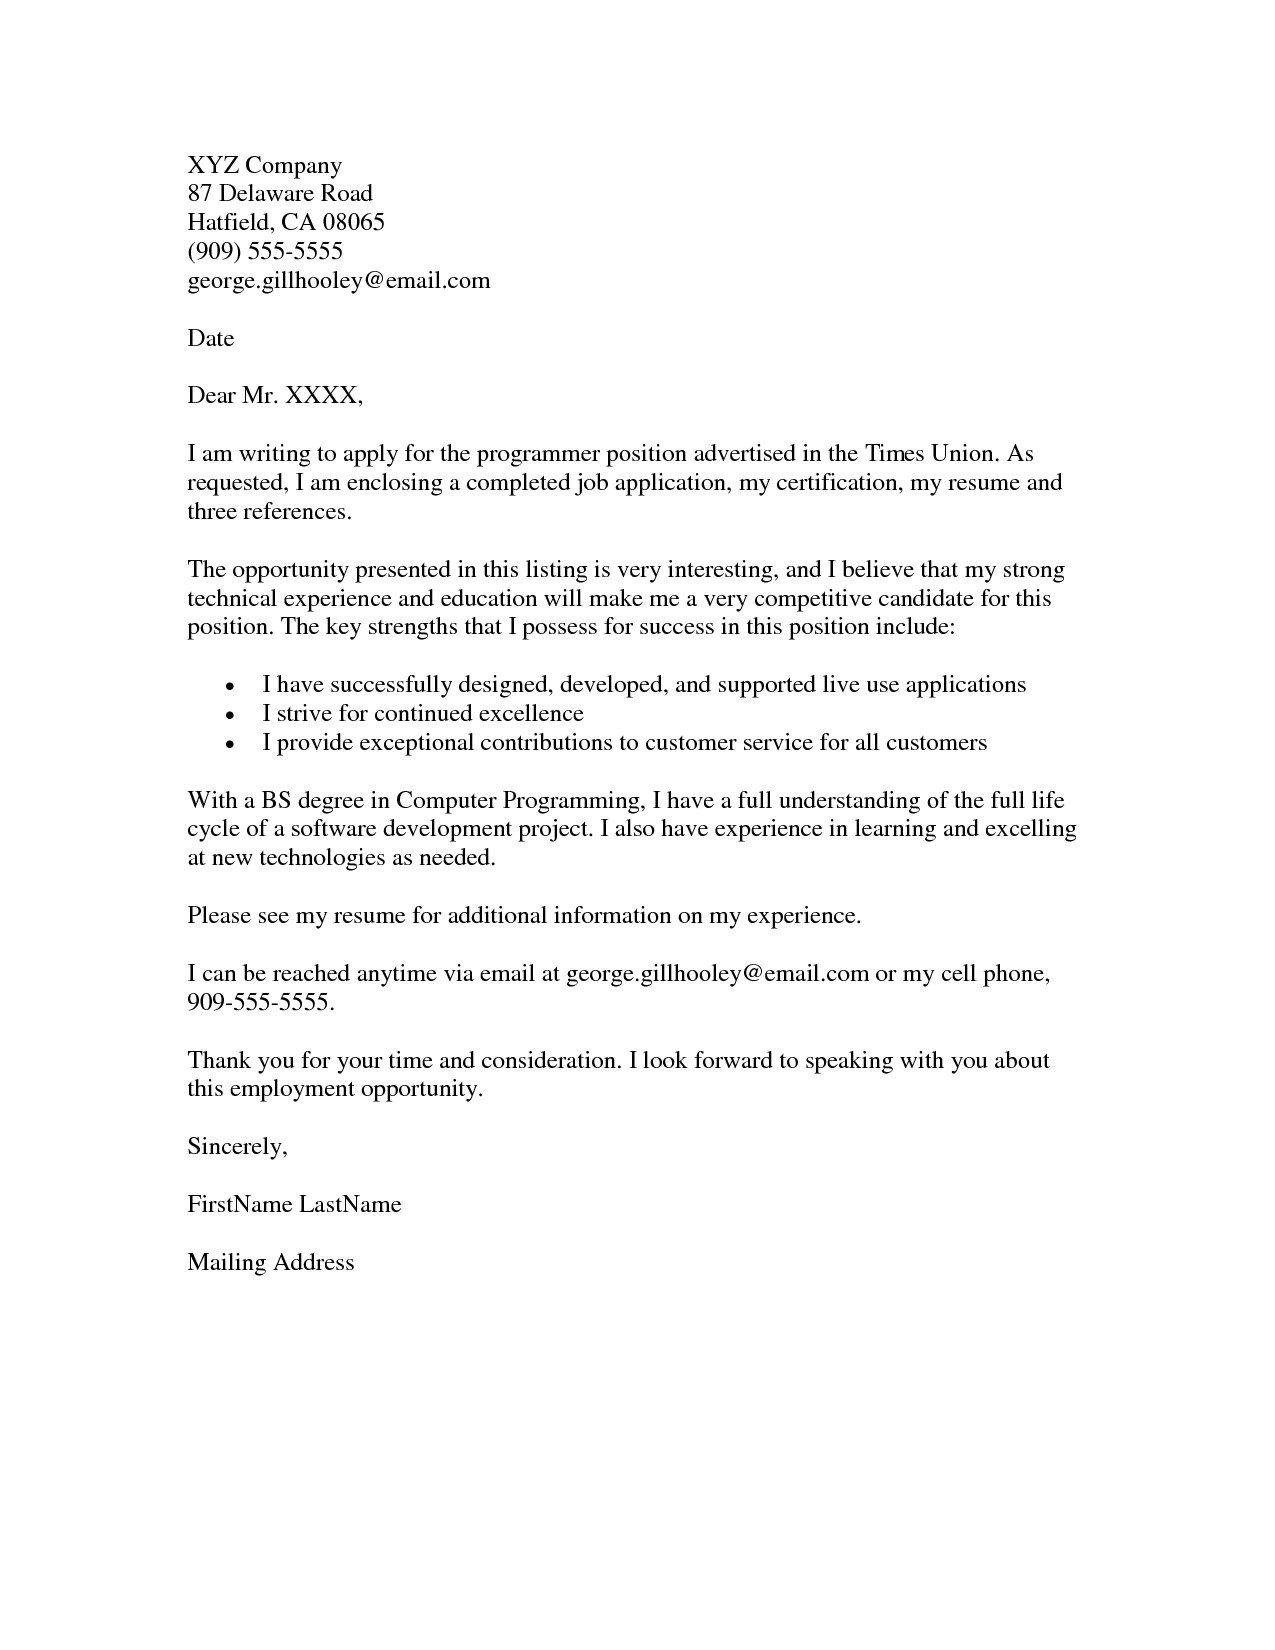 Cover Letters for Job Applications by Email Job Application Cover Letter Example Resumes Job